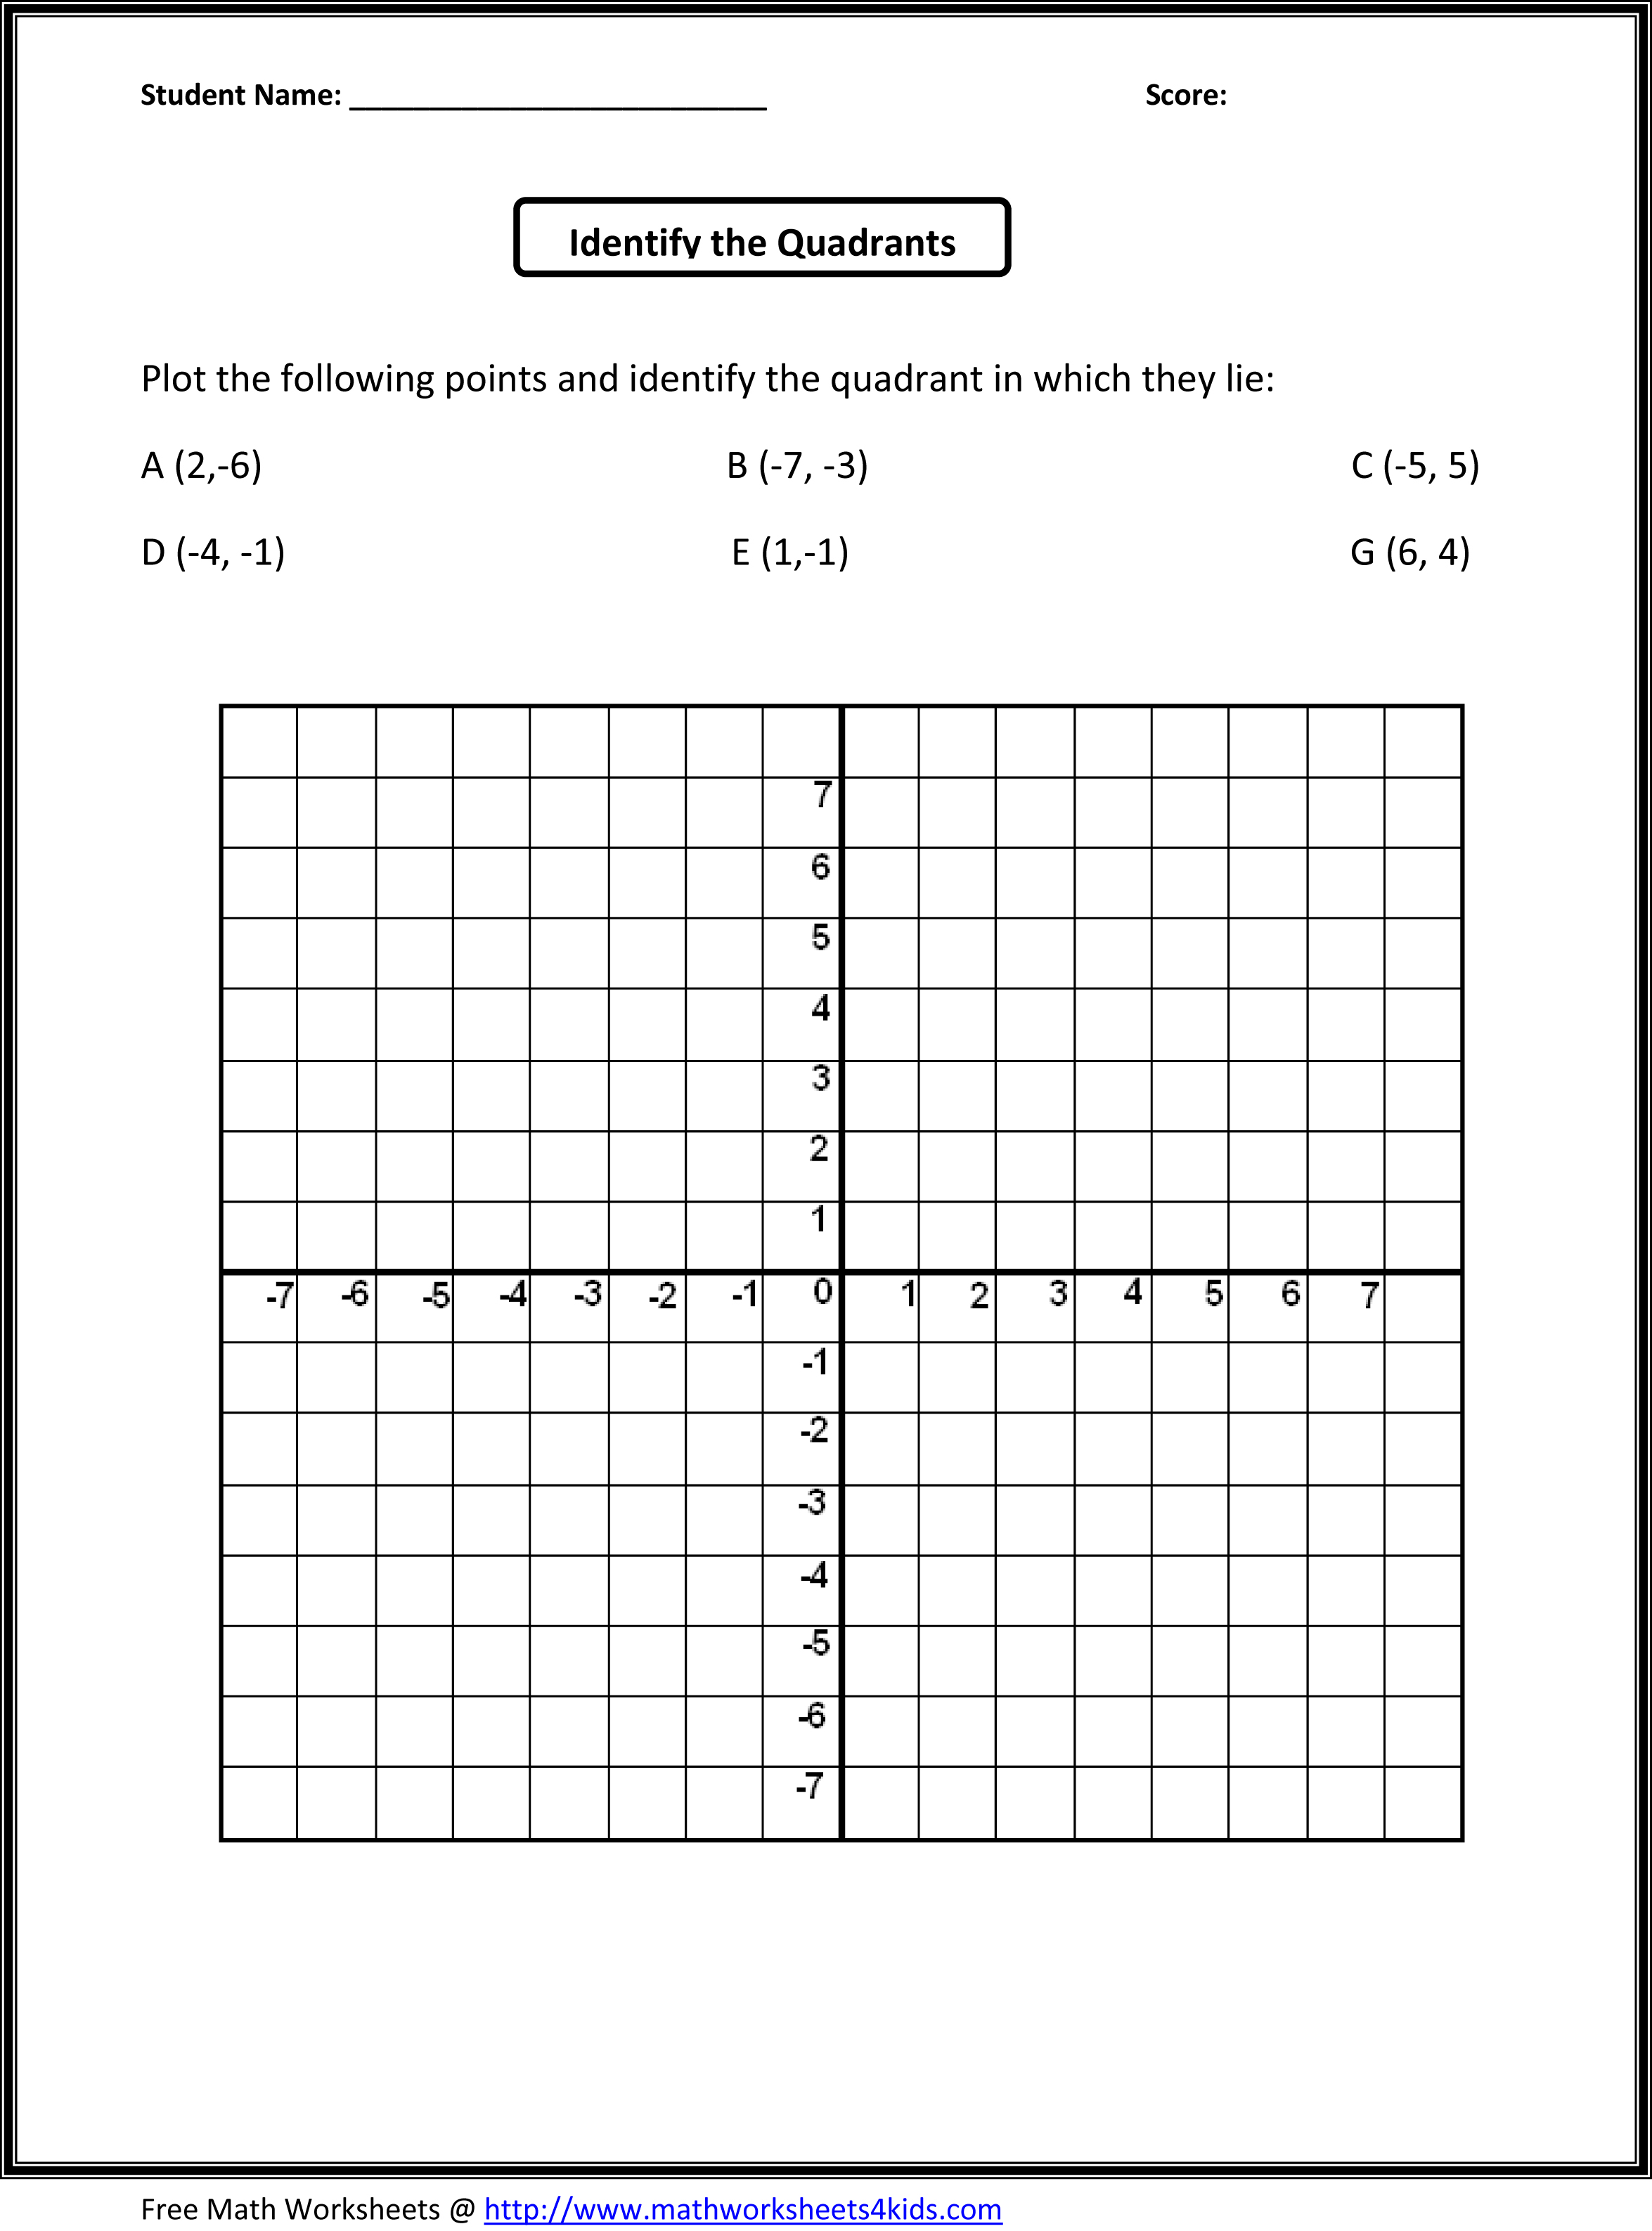 Math Worksheets Go Christmas Math Worksheets 4th Grade New – Calendar Math Worksheets